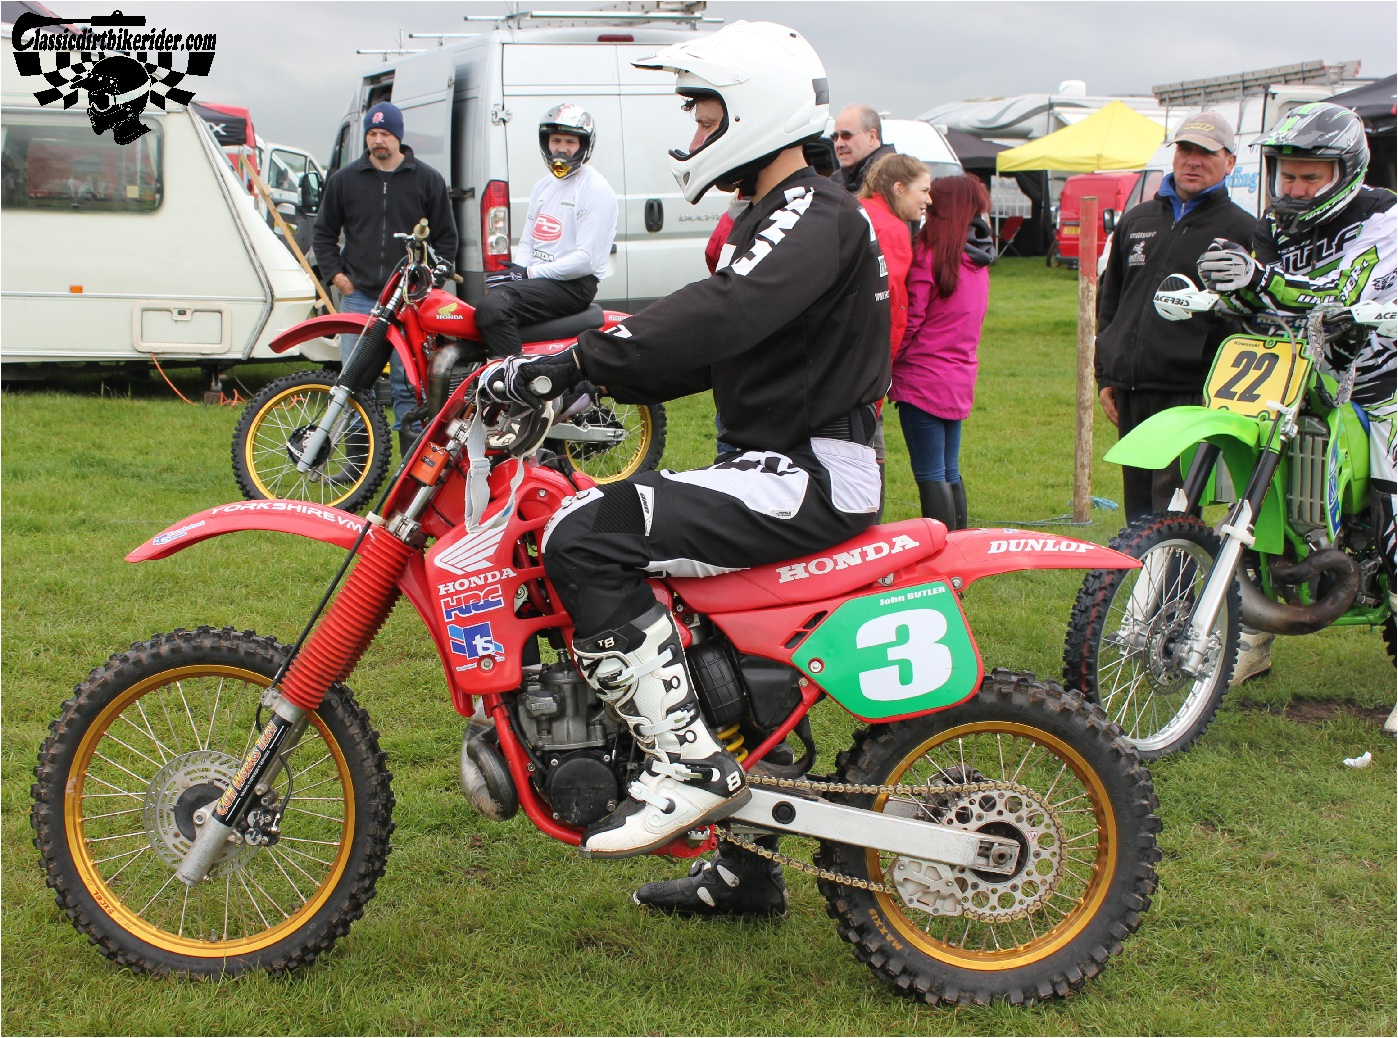 classicdirtbikerider.com-national-twinshock-championship-2015-Garstang-riders get ready for practice 3